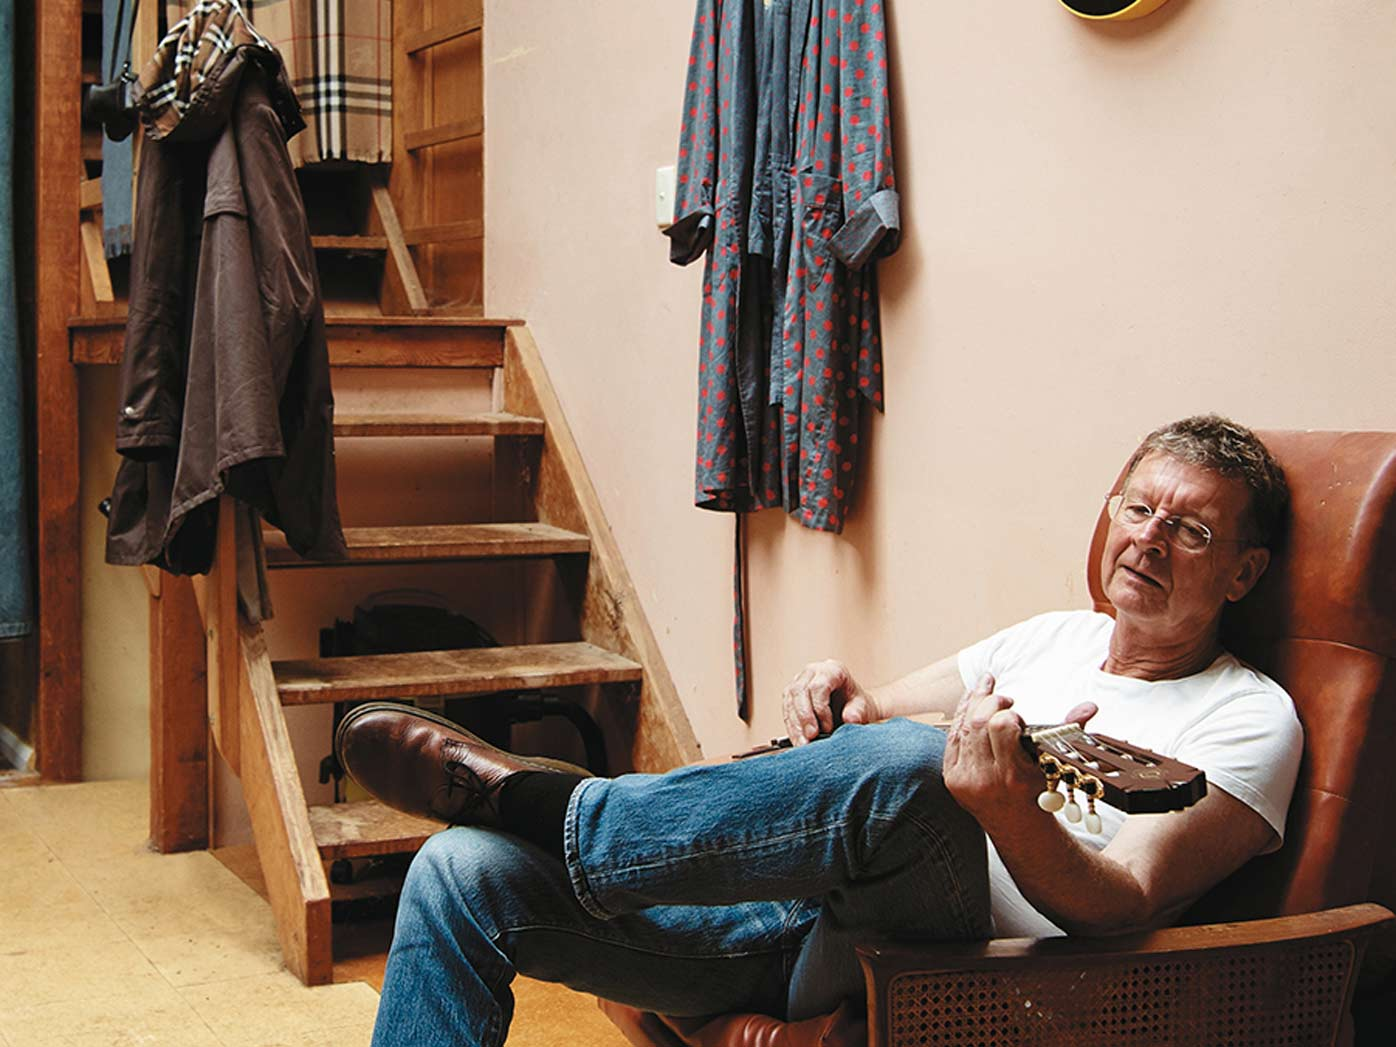 Red Symons on the loss of his marriage, son and job